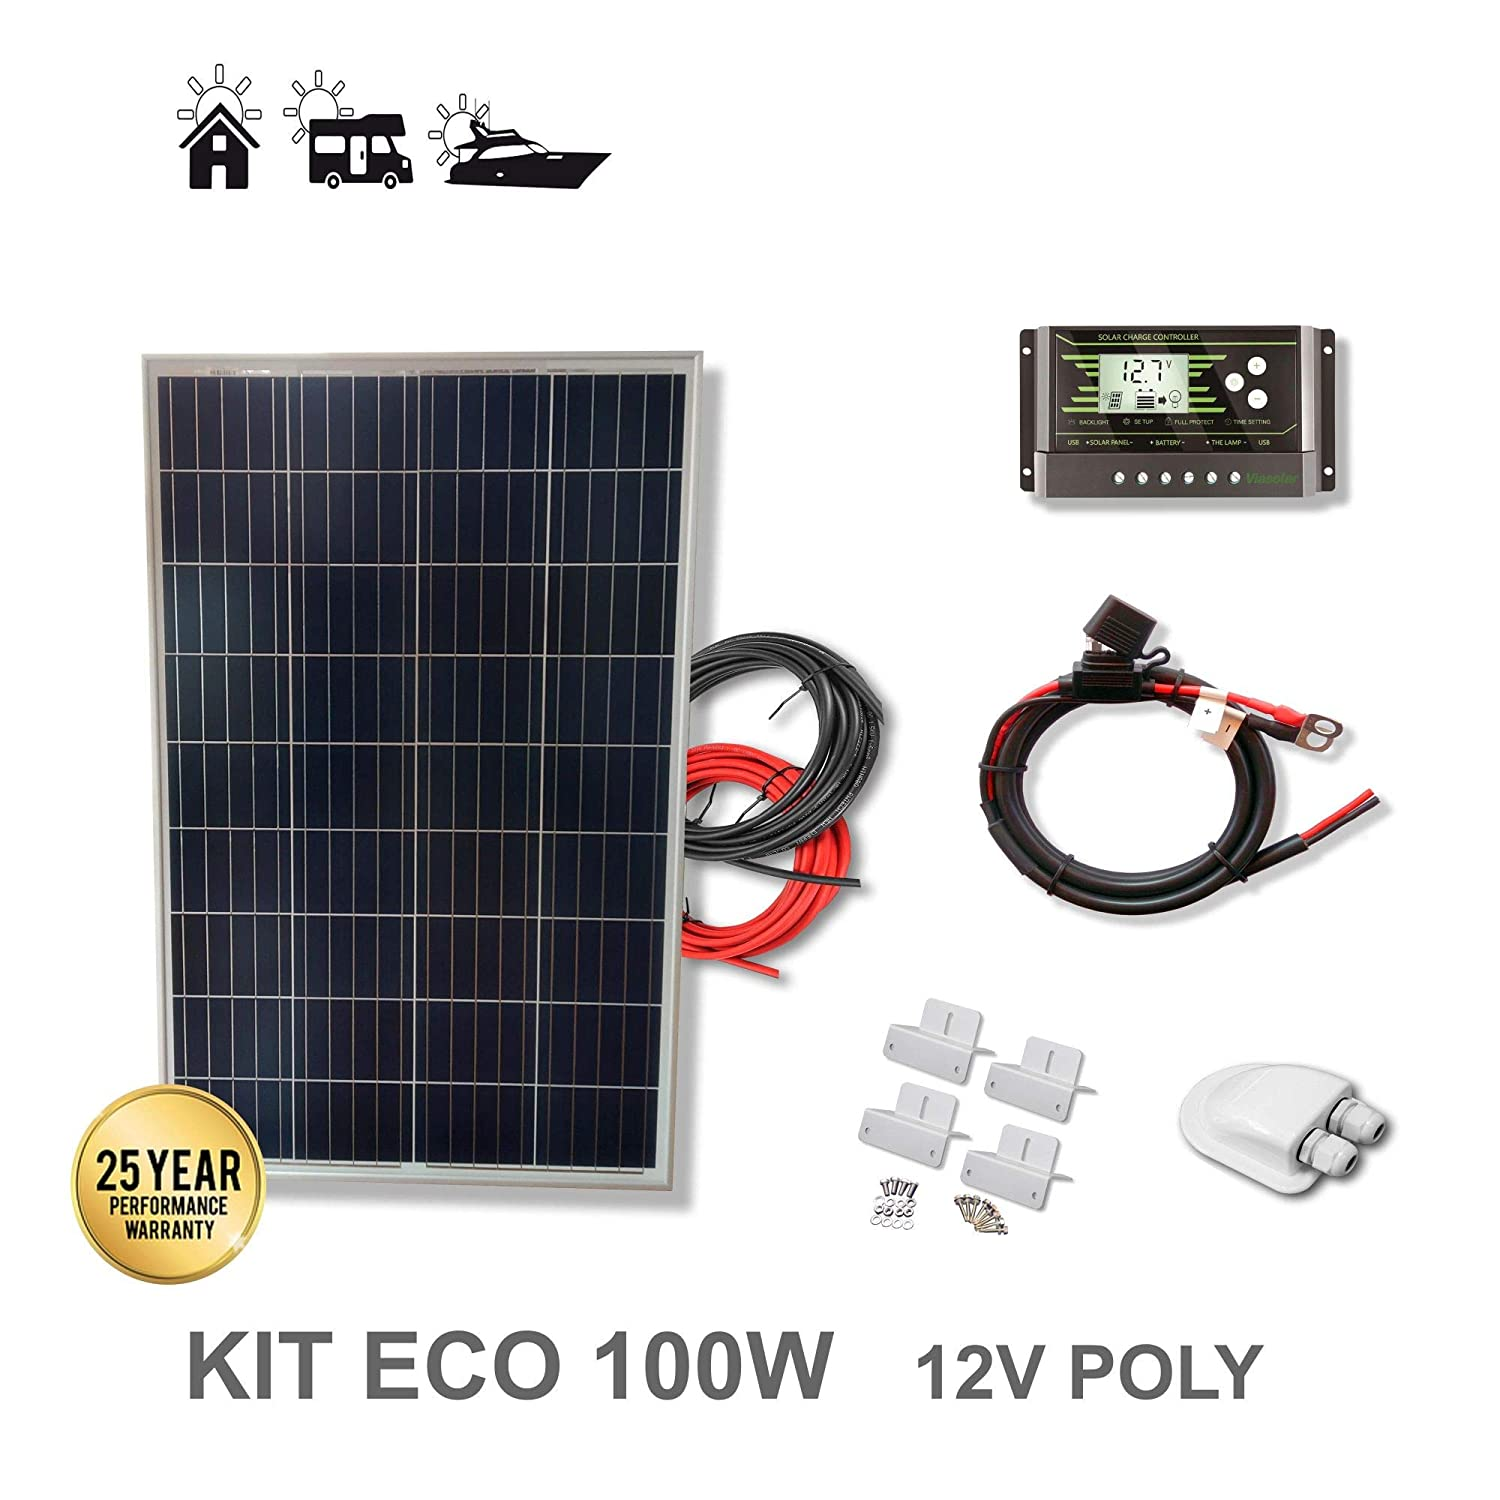 VIASOLAR Kit 100W Eco 12V Panel Solar